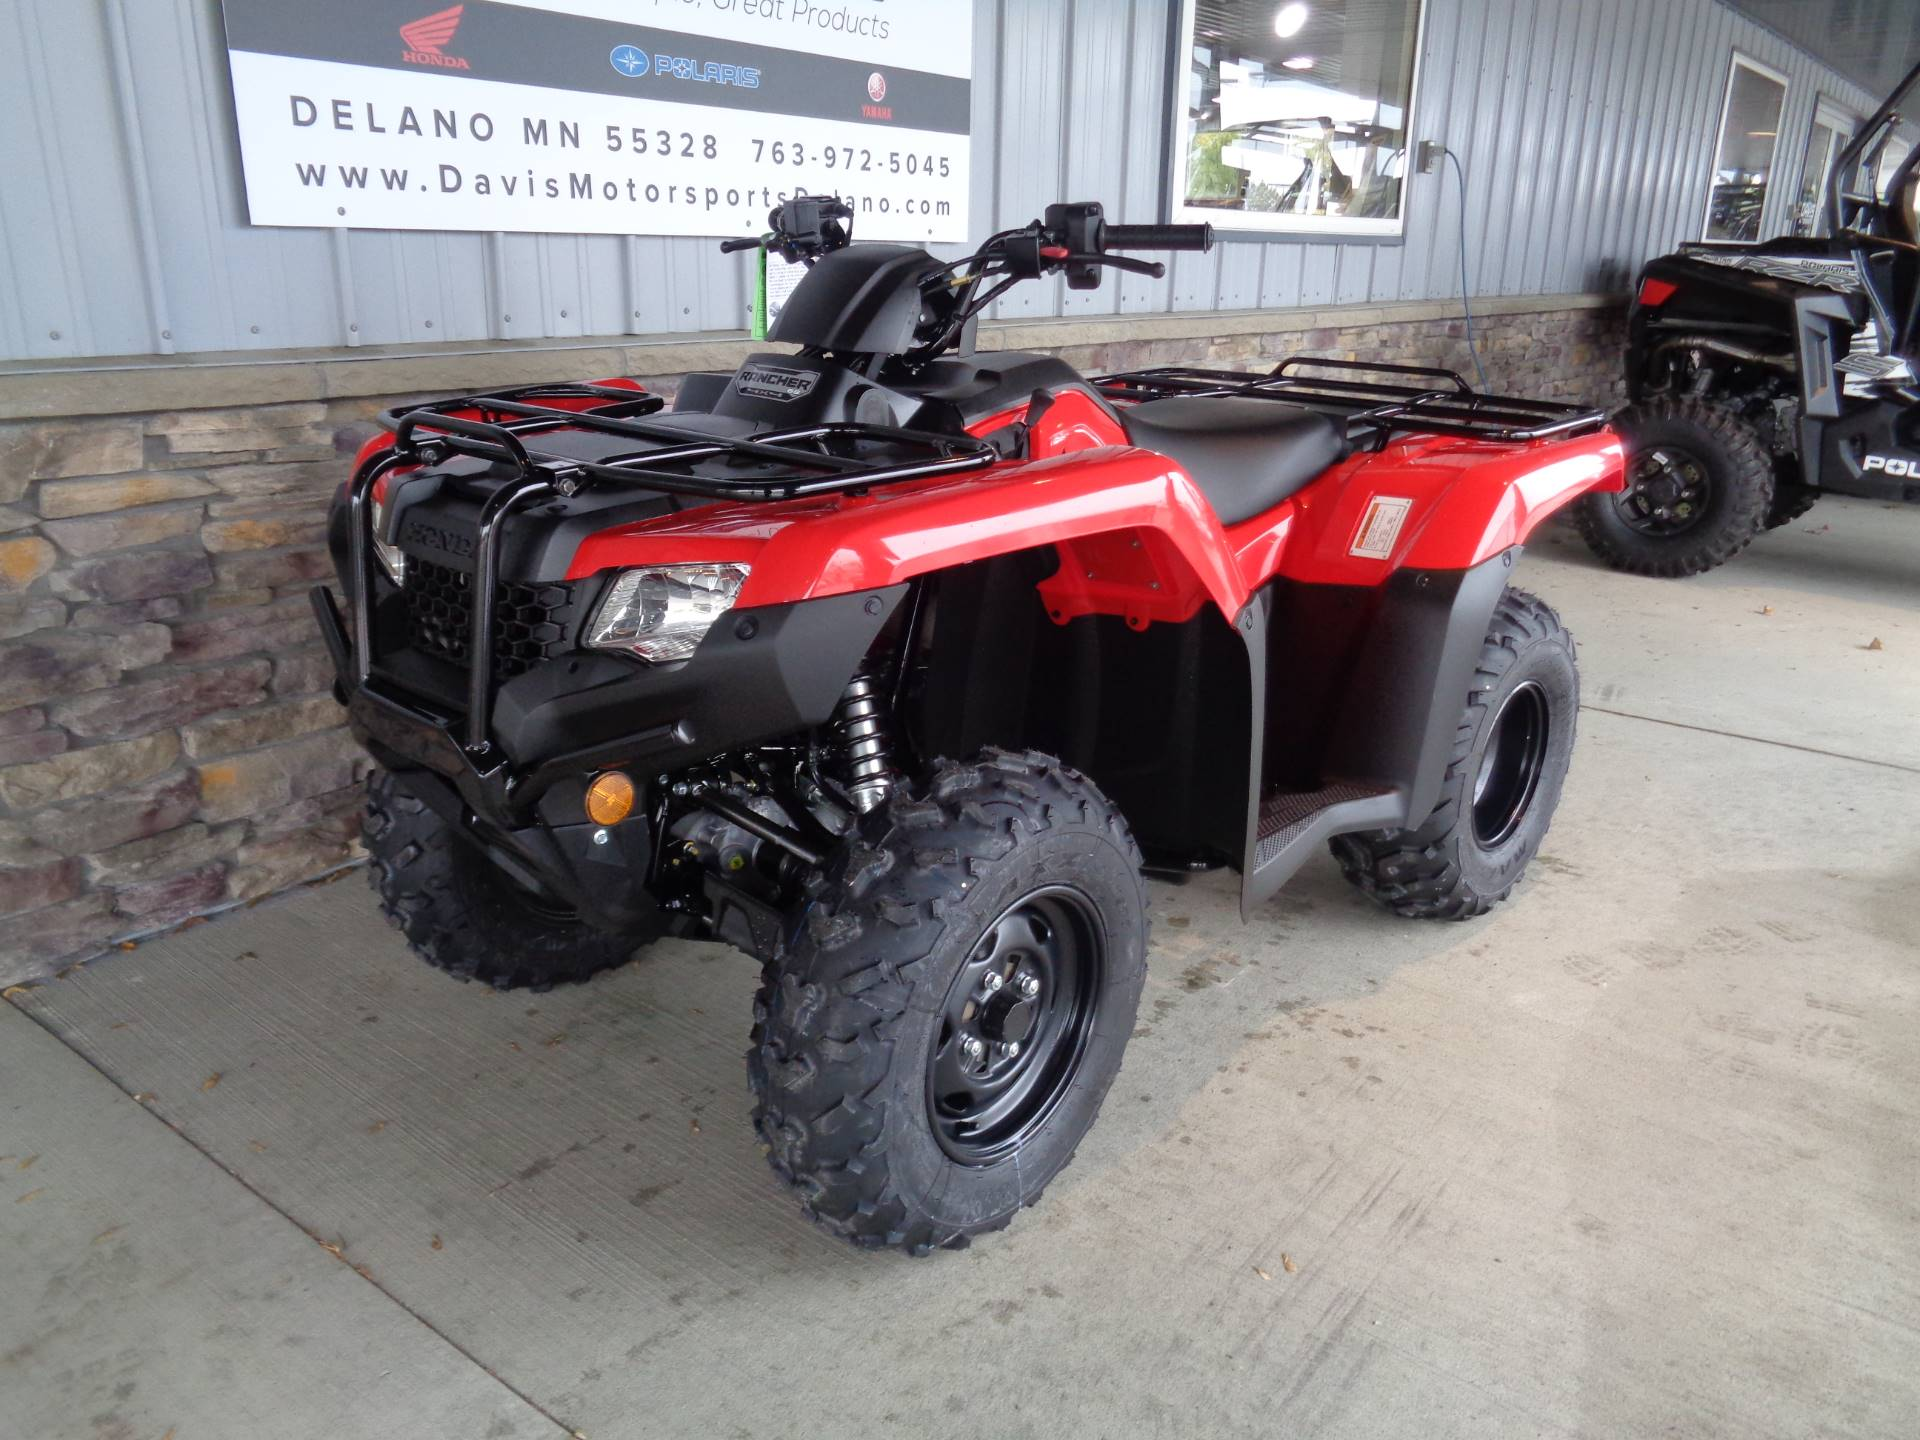 2019 Honda FourTrax Rancher 4x4 ES in Delano, Minnesota - Photo 4